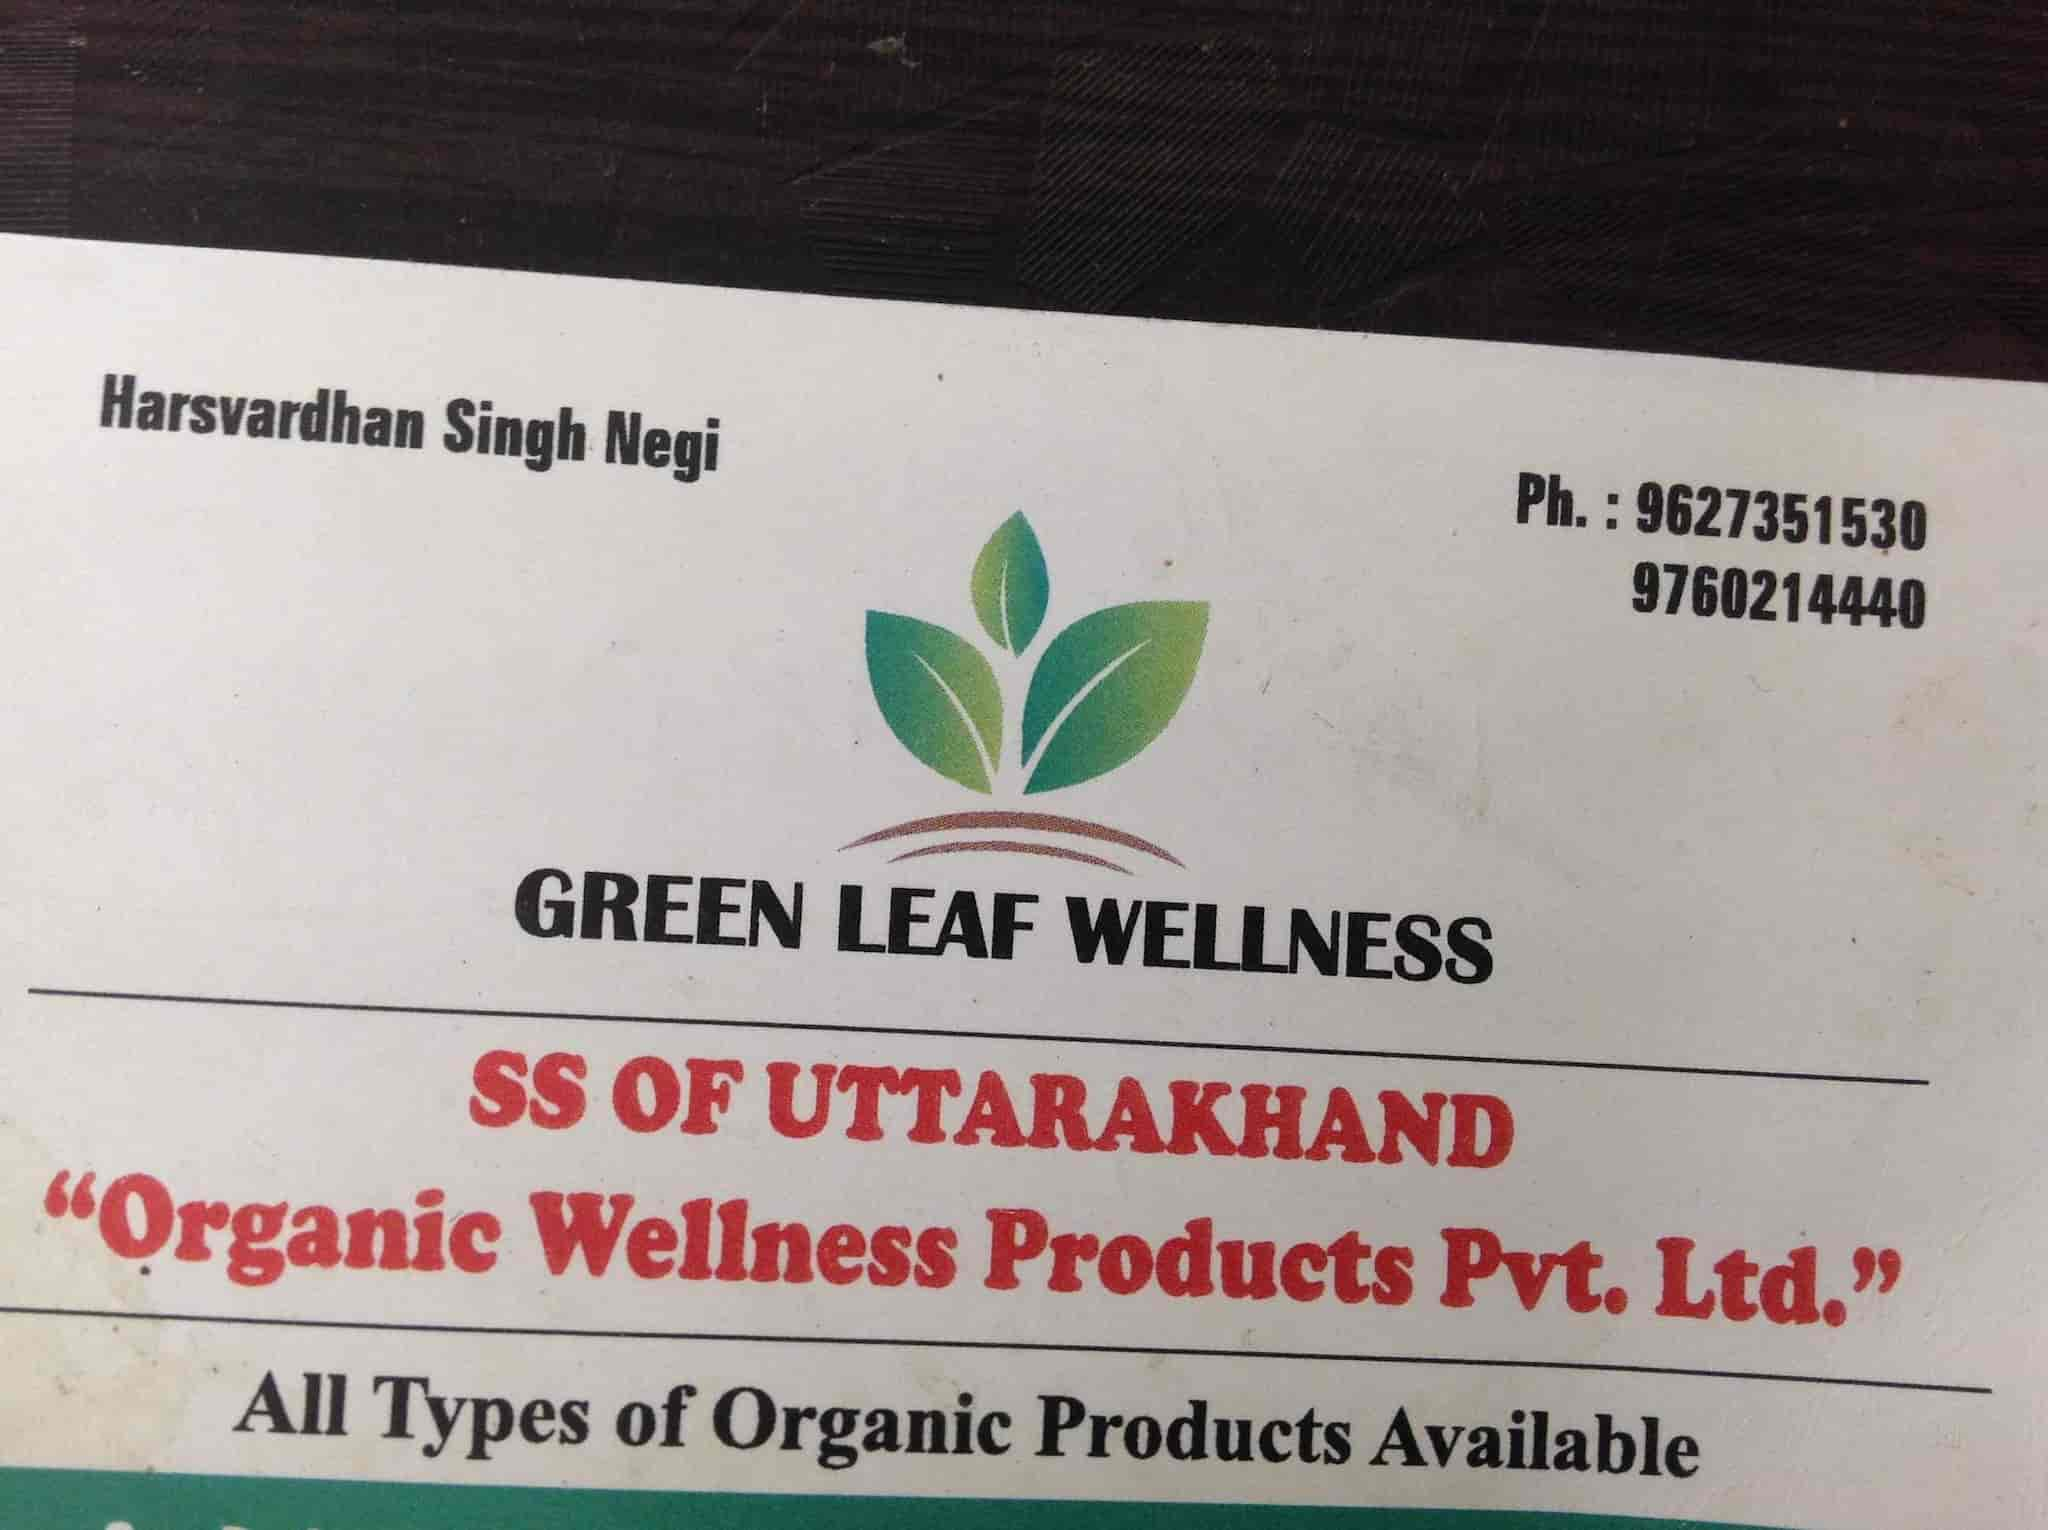 green leaf wellness | Jidileaf co